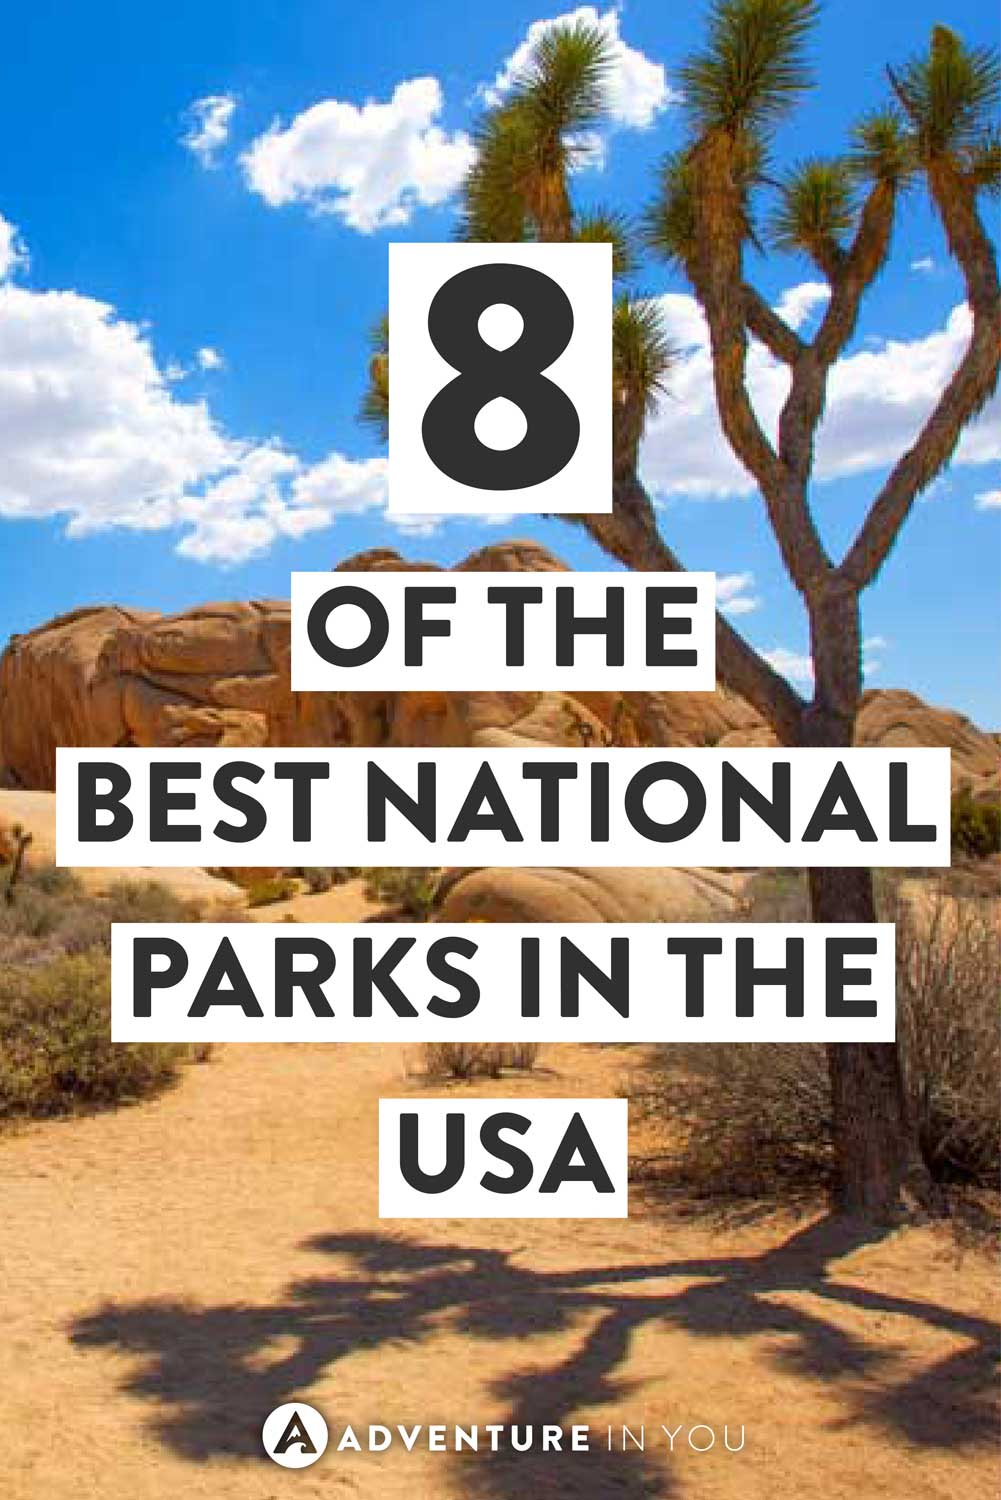 USA National Parks | Looking for the best national parks to visit? Here are 8 of the best ones that are worth adding to your bucket list! #usa #nationalparks